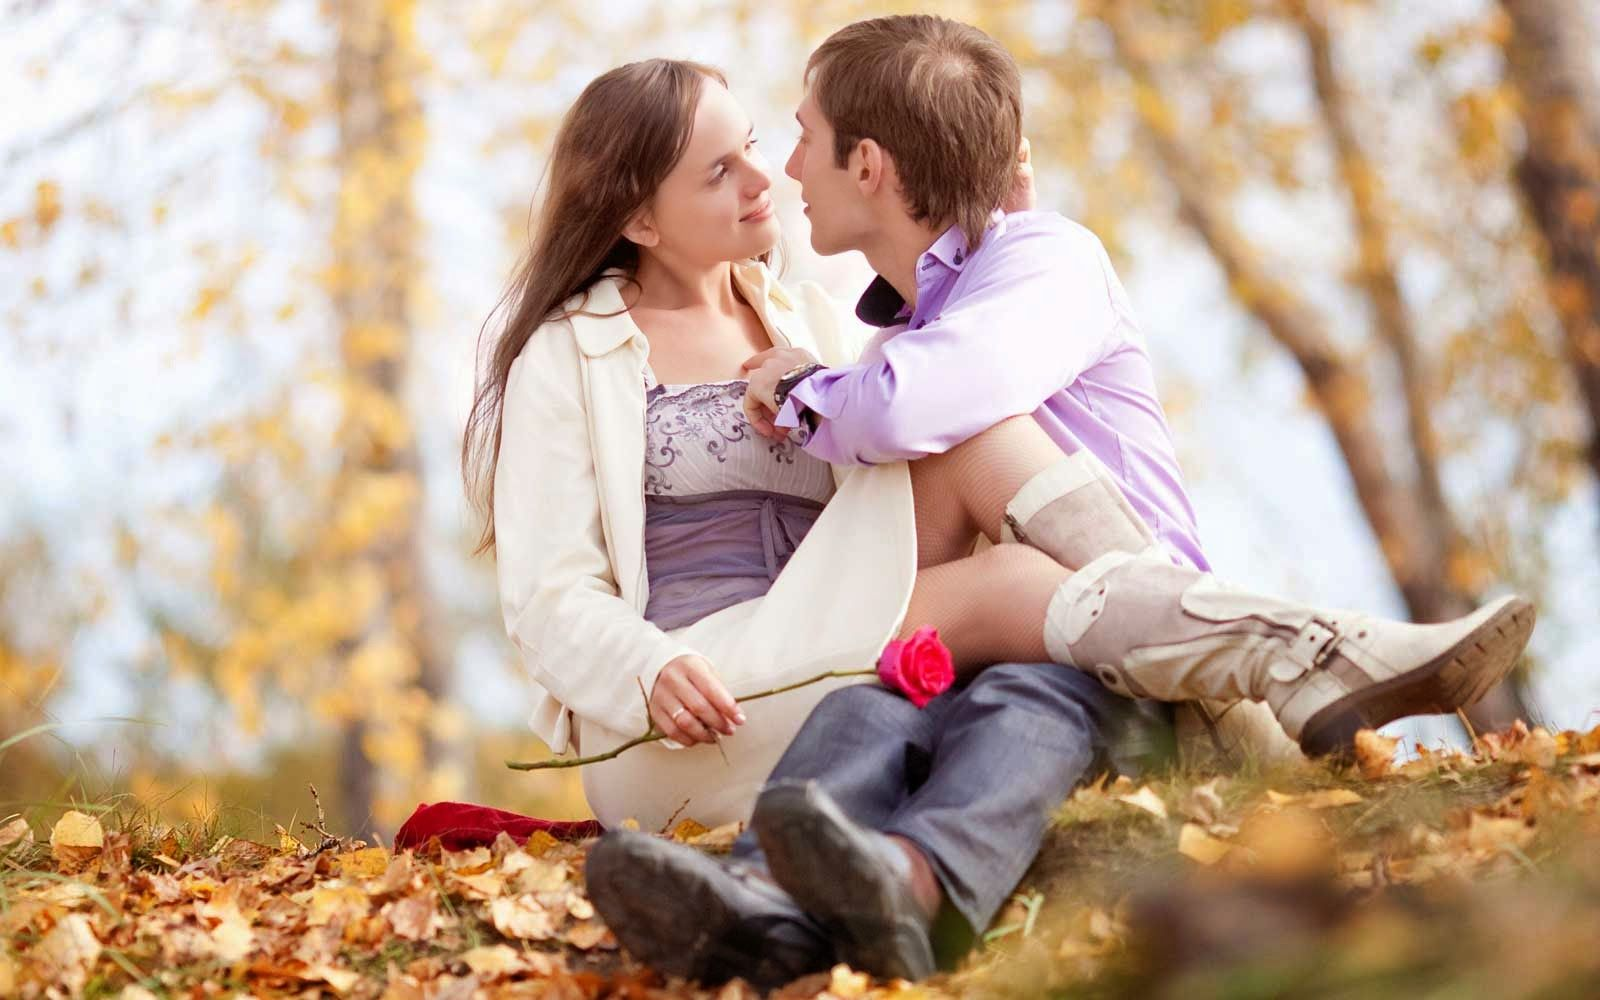 Simple Wallpaper High Quality Couple - 6b856263c83b4fa559a770e0a7f11f60  Best Photo Reference_464811.jpg